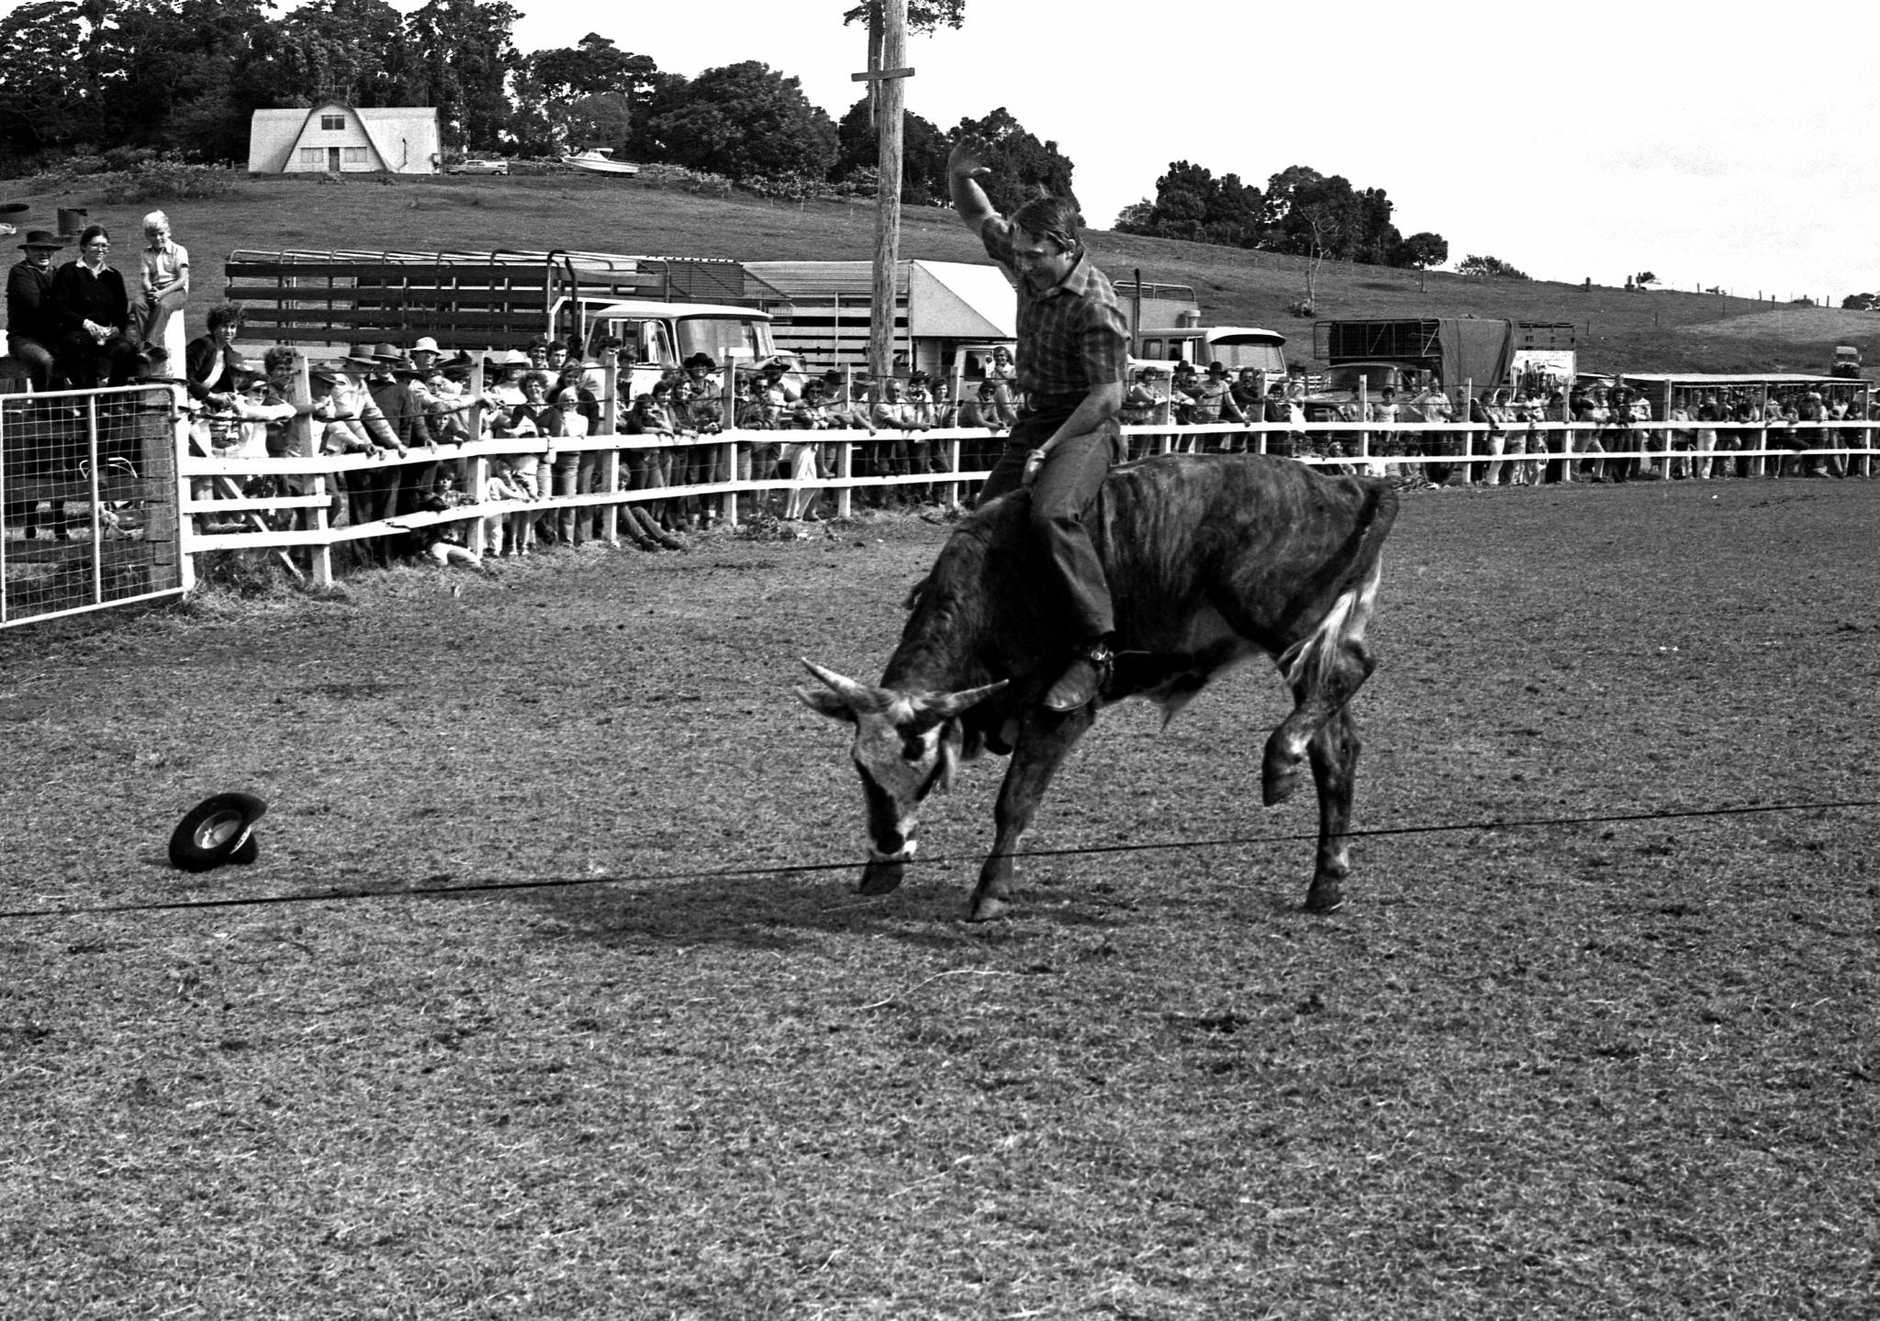 Bull riding event in the rodeo arena during the Maleny Show & Rodeo, 1981.